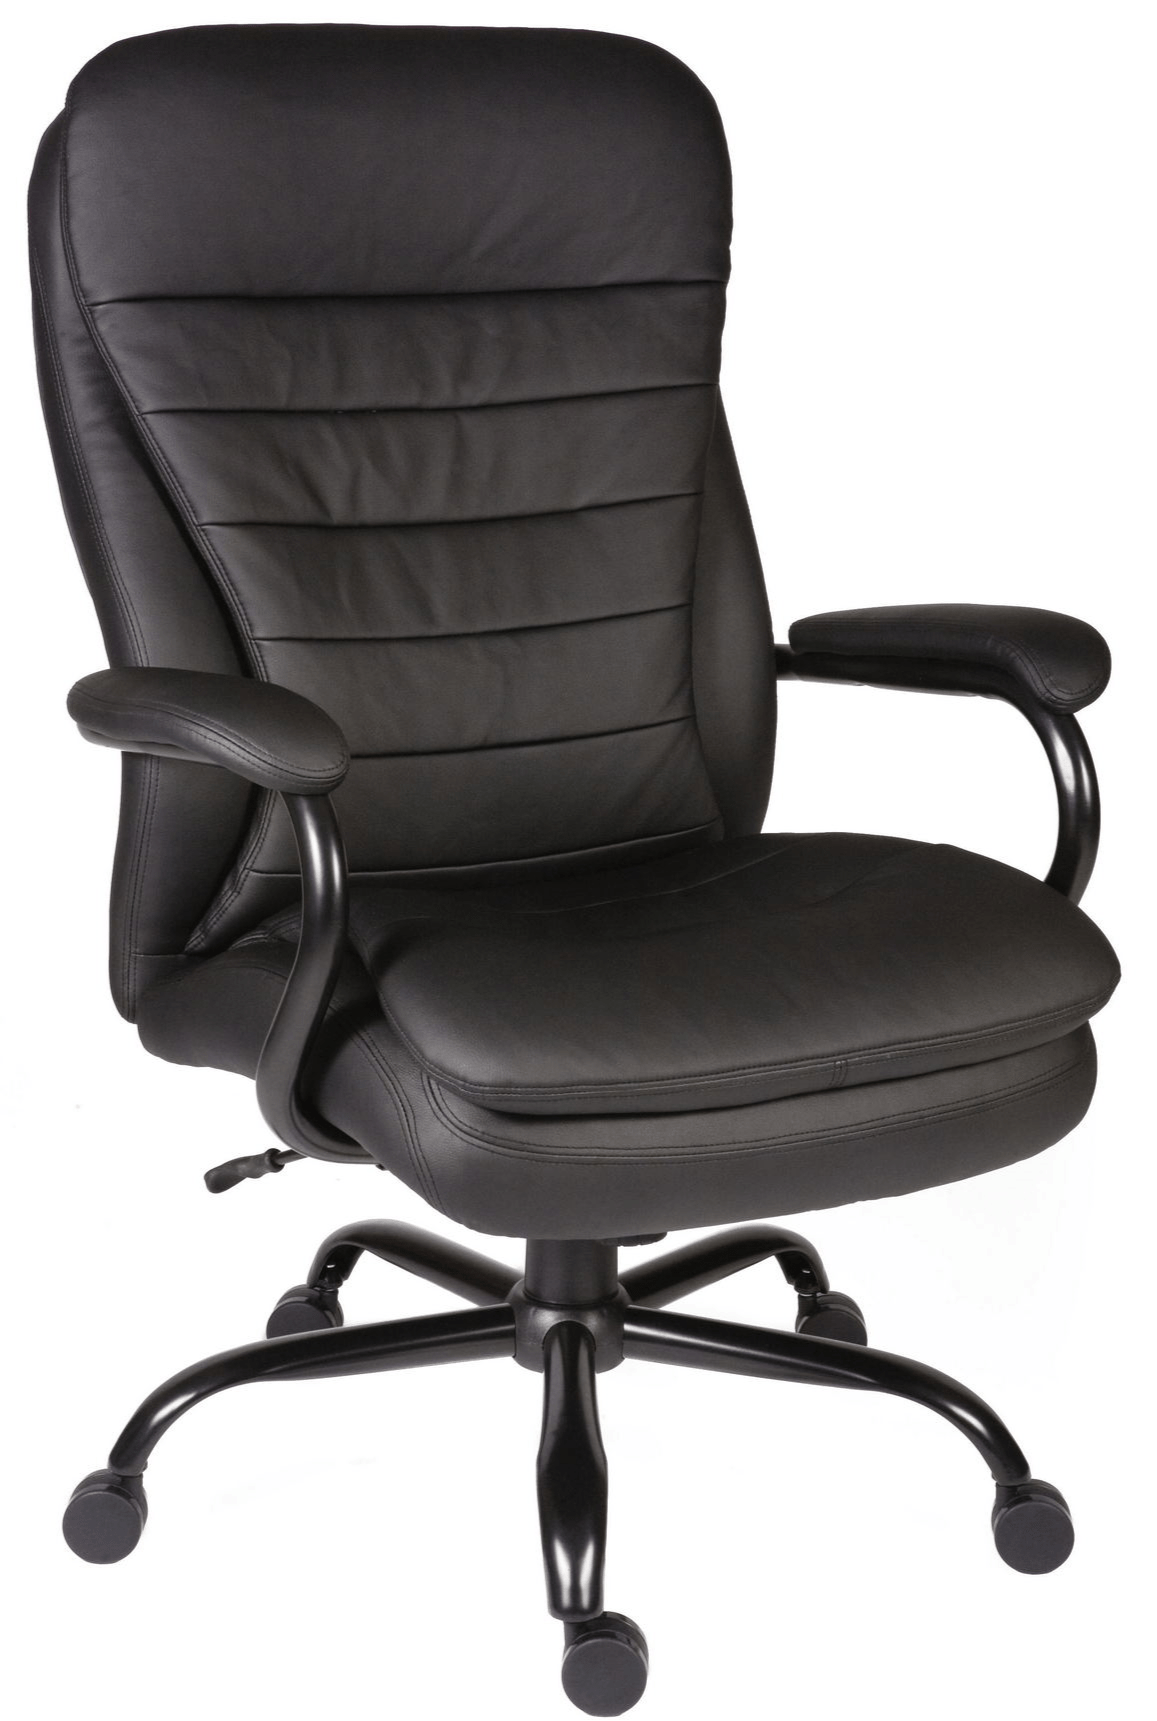 Bariatric Office Chairs Heavy Duty Office Chairs Bariatric Office Chairs